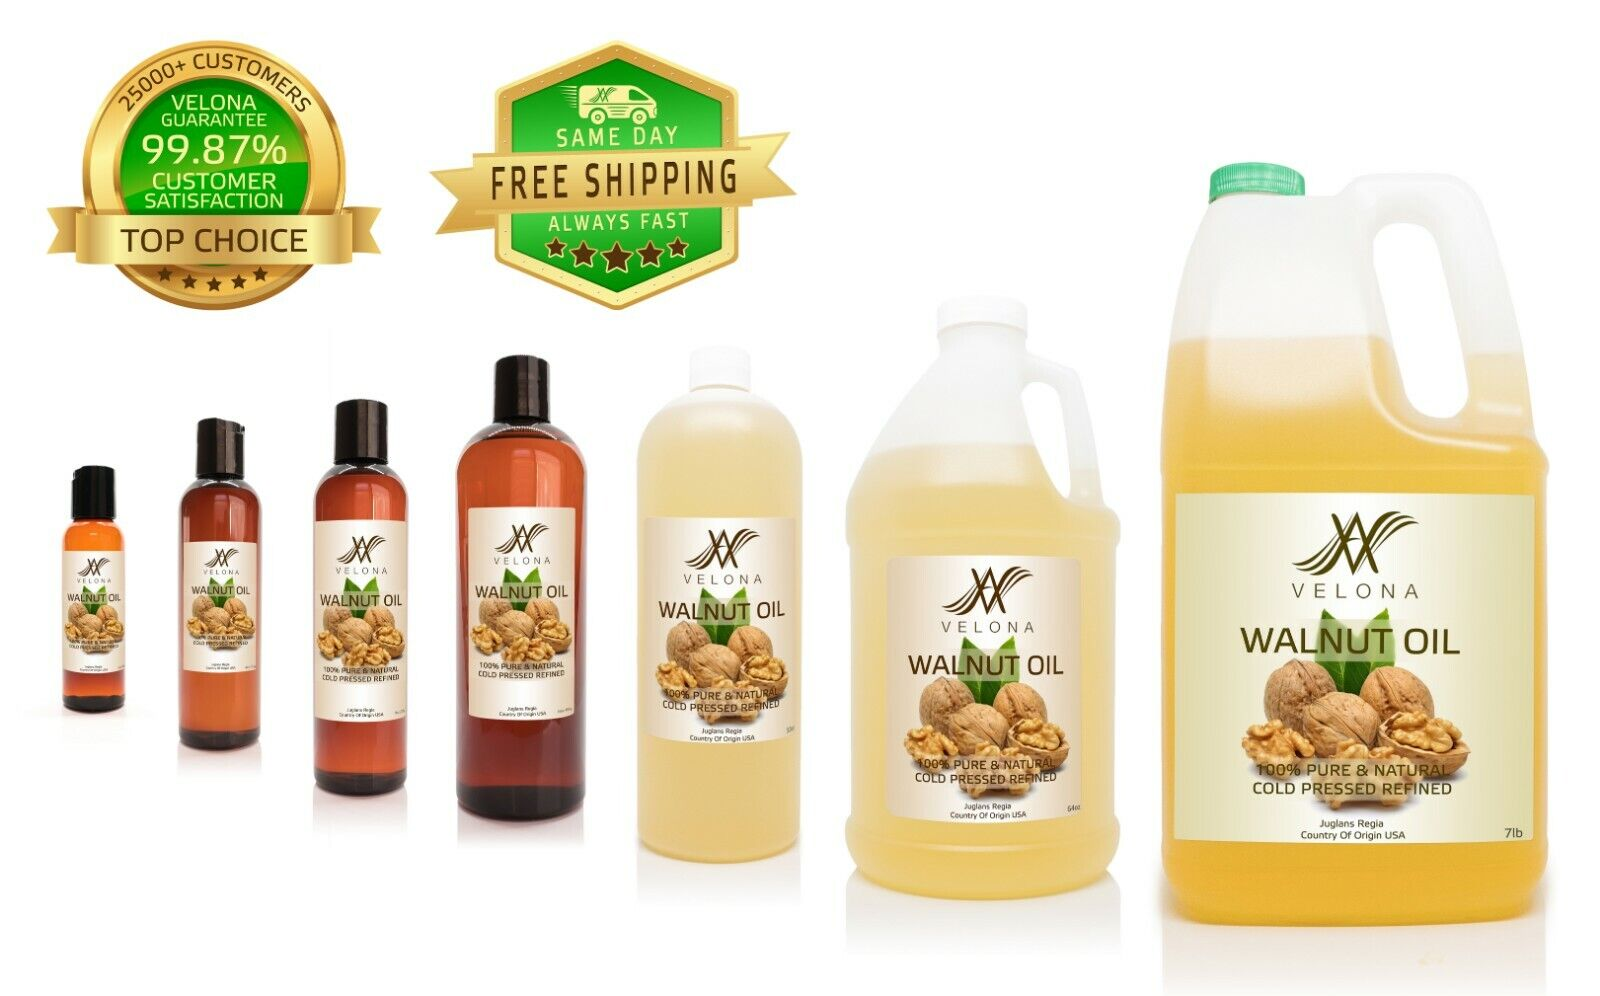 WALNUT OIL 100% PURE & NATURAL REFINED PURE VELONA Candle Making & Soap Making